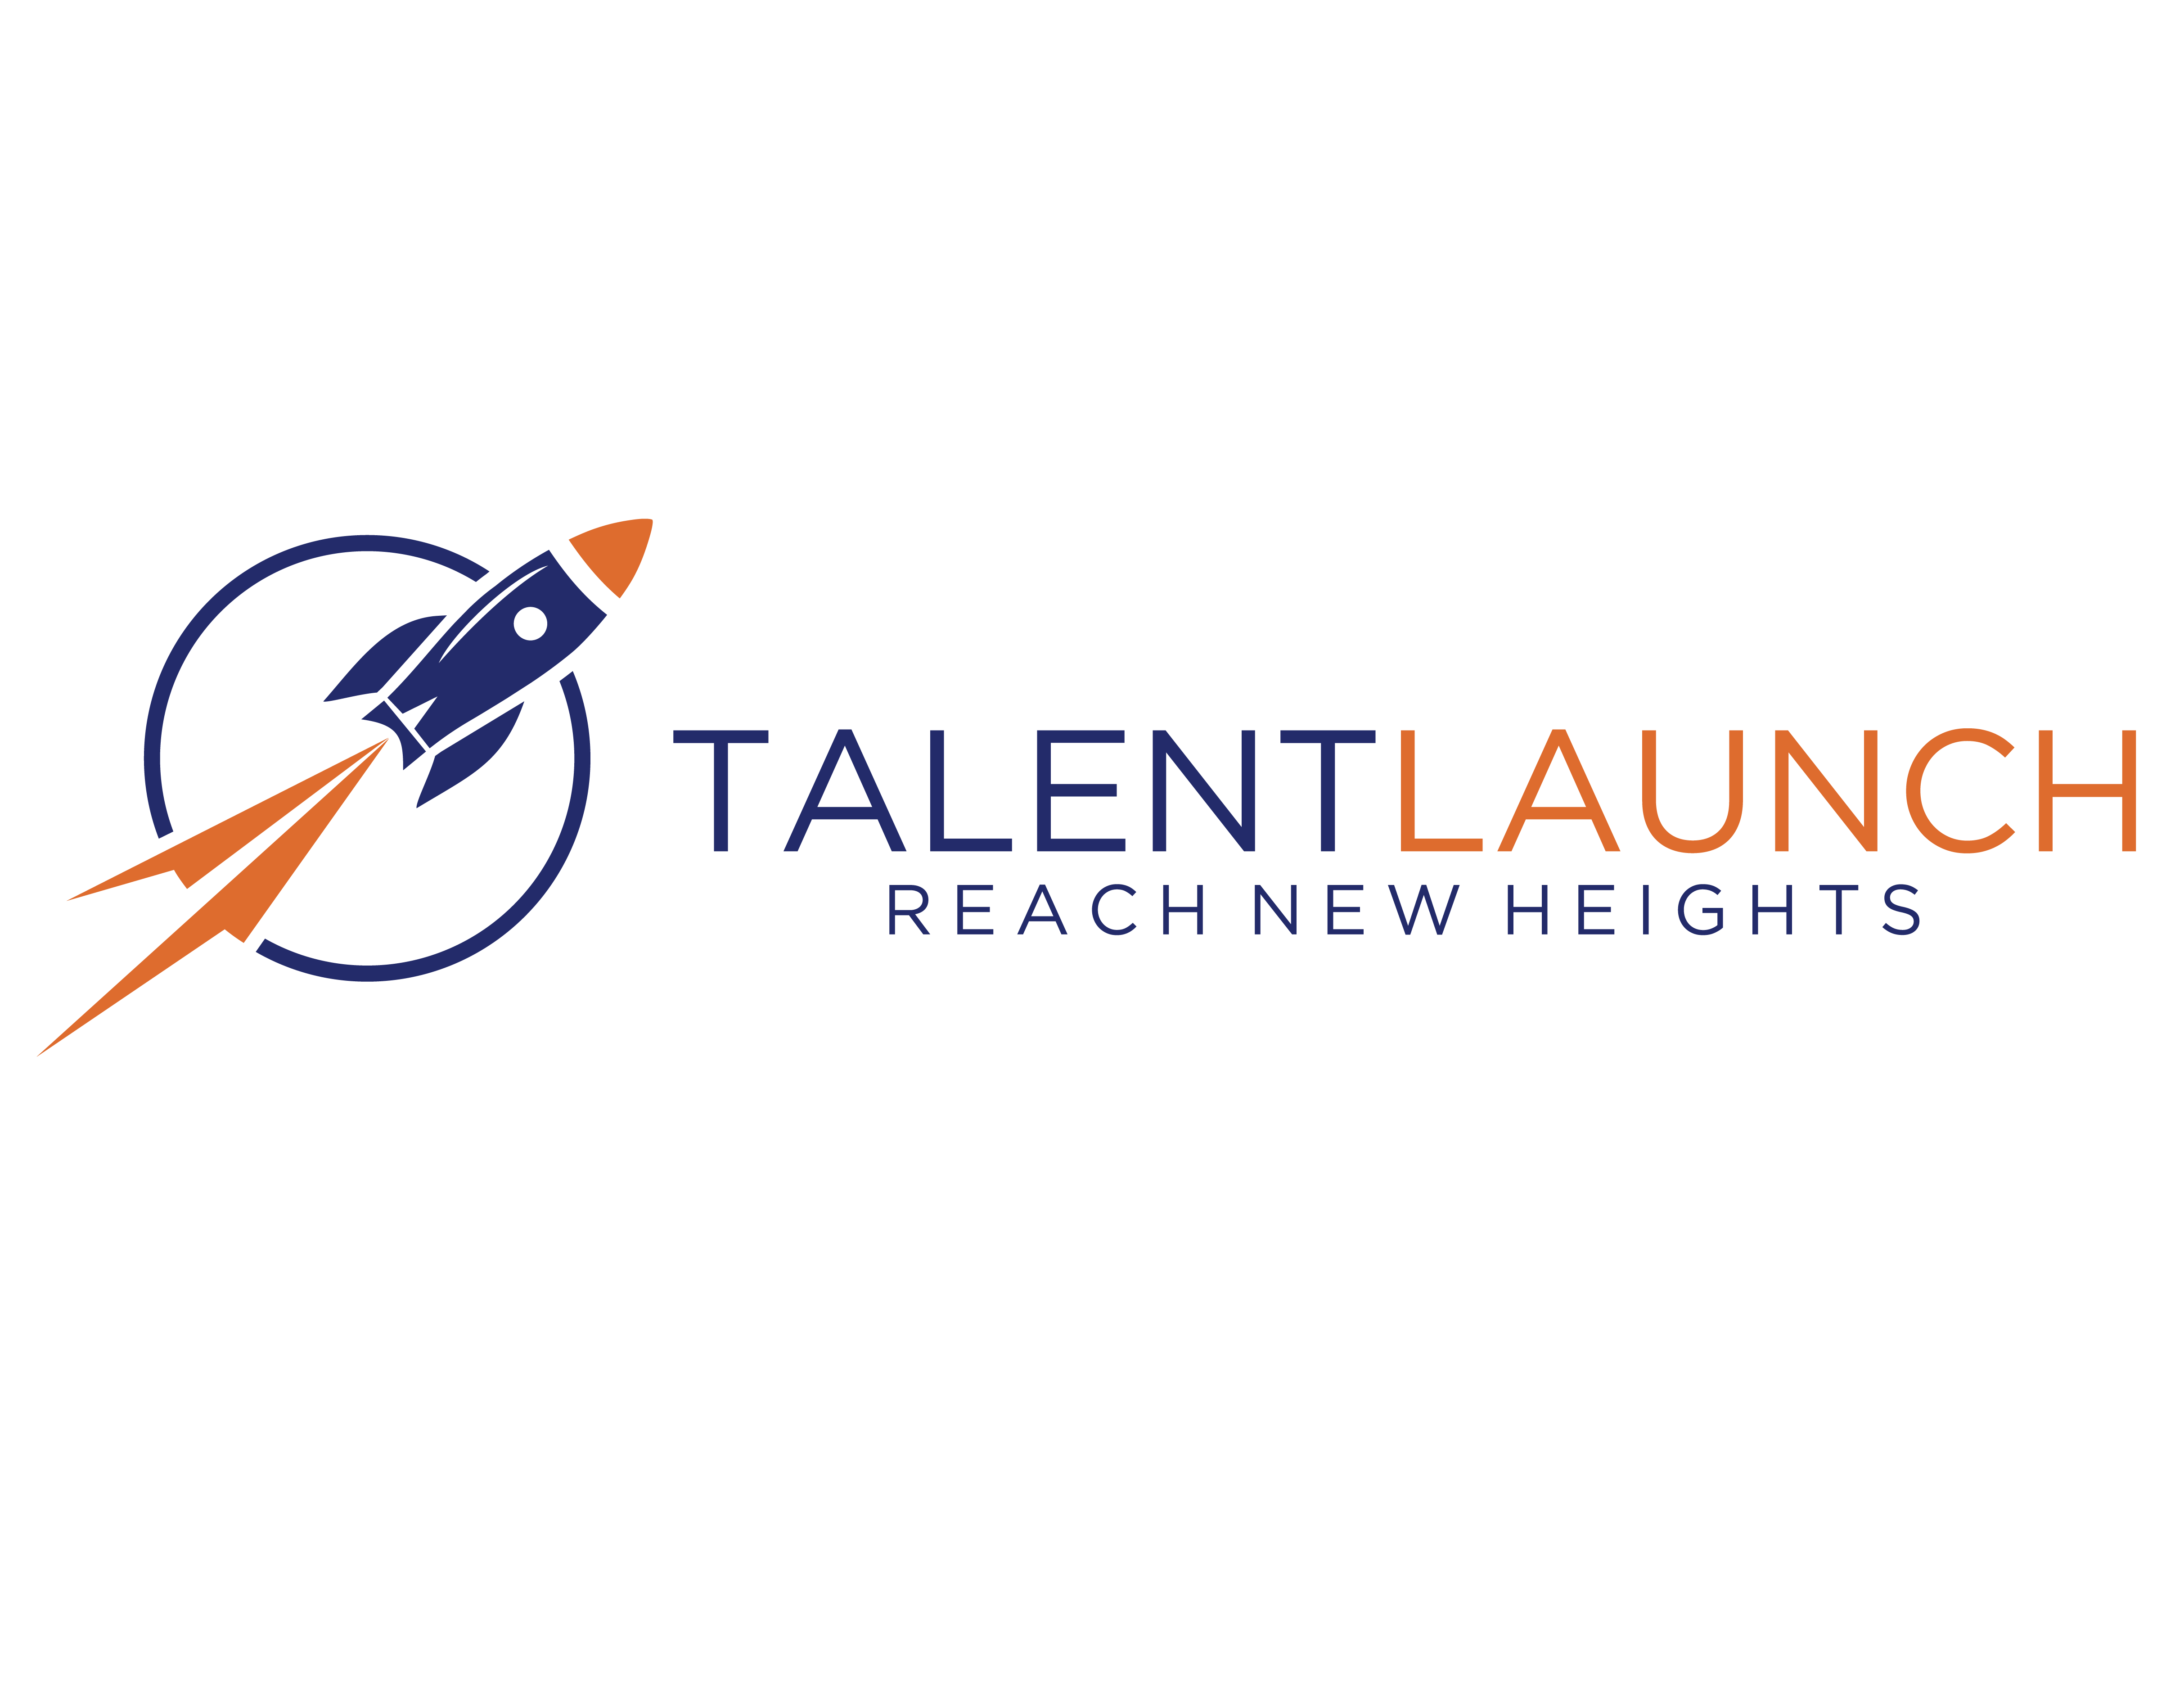 TalentLaunch Hires Jeffrey M. Staats to Lead their Marketing Transformation Efforts